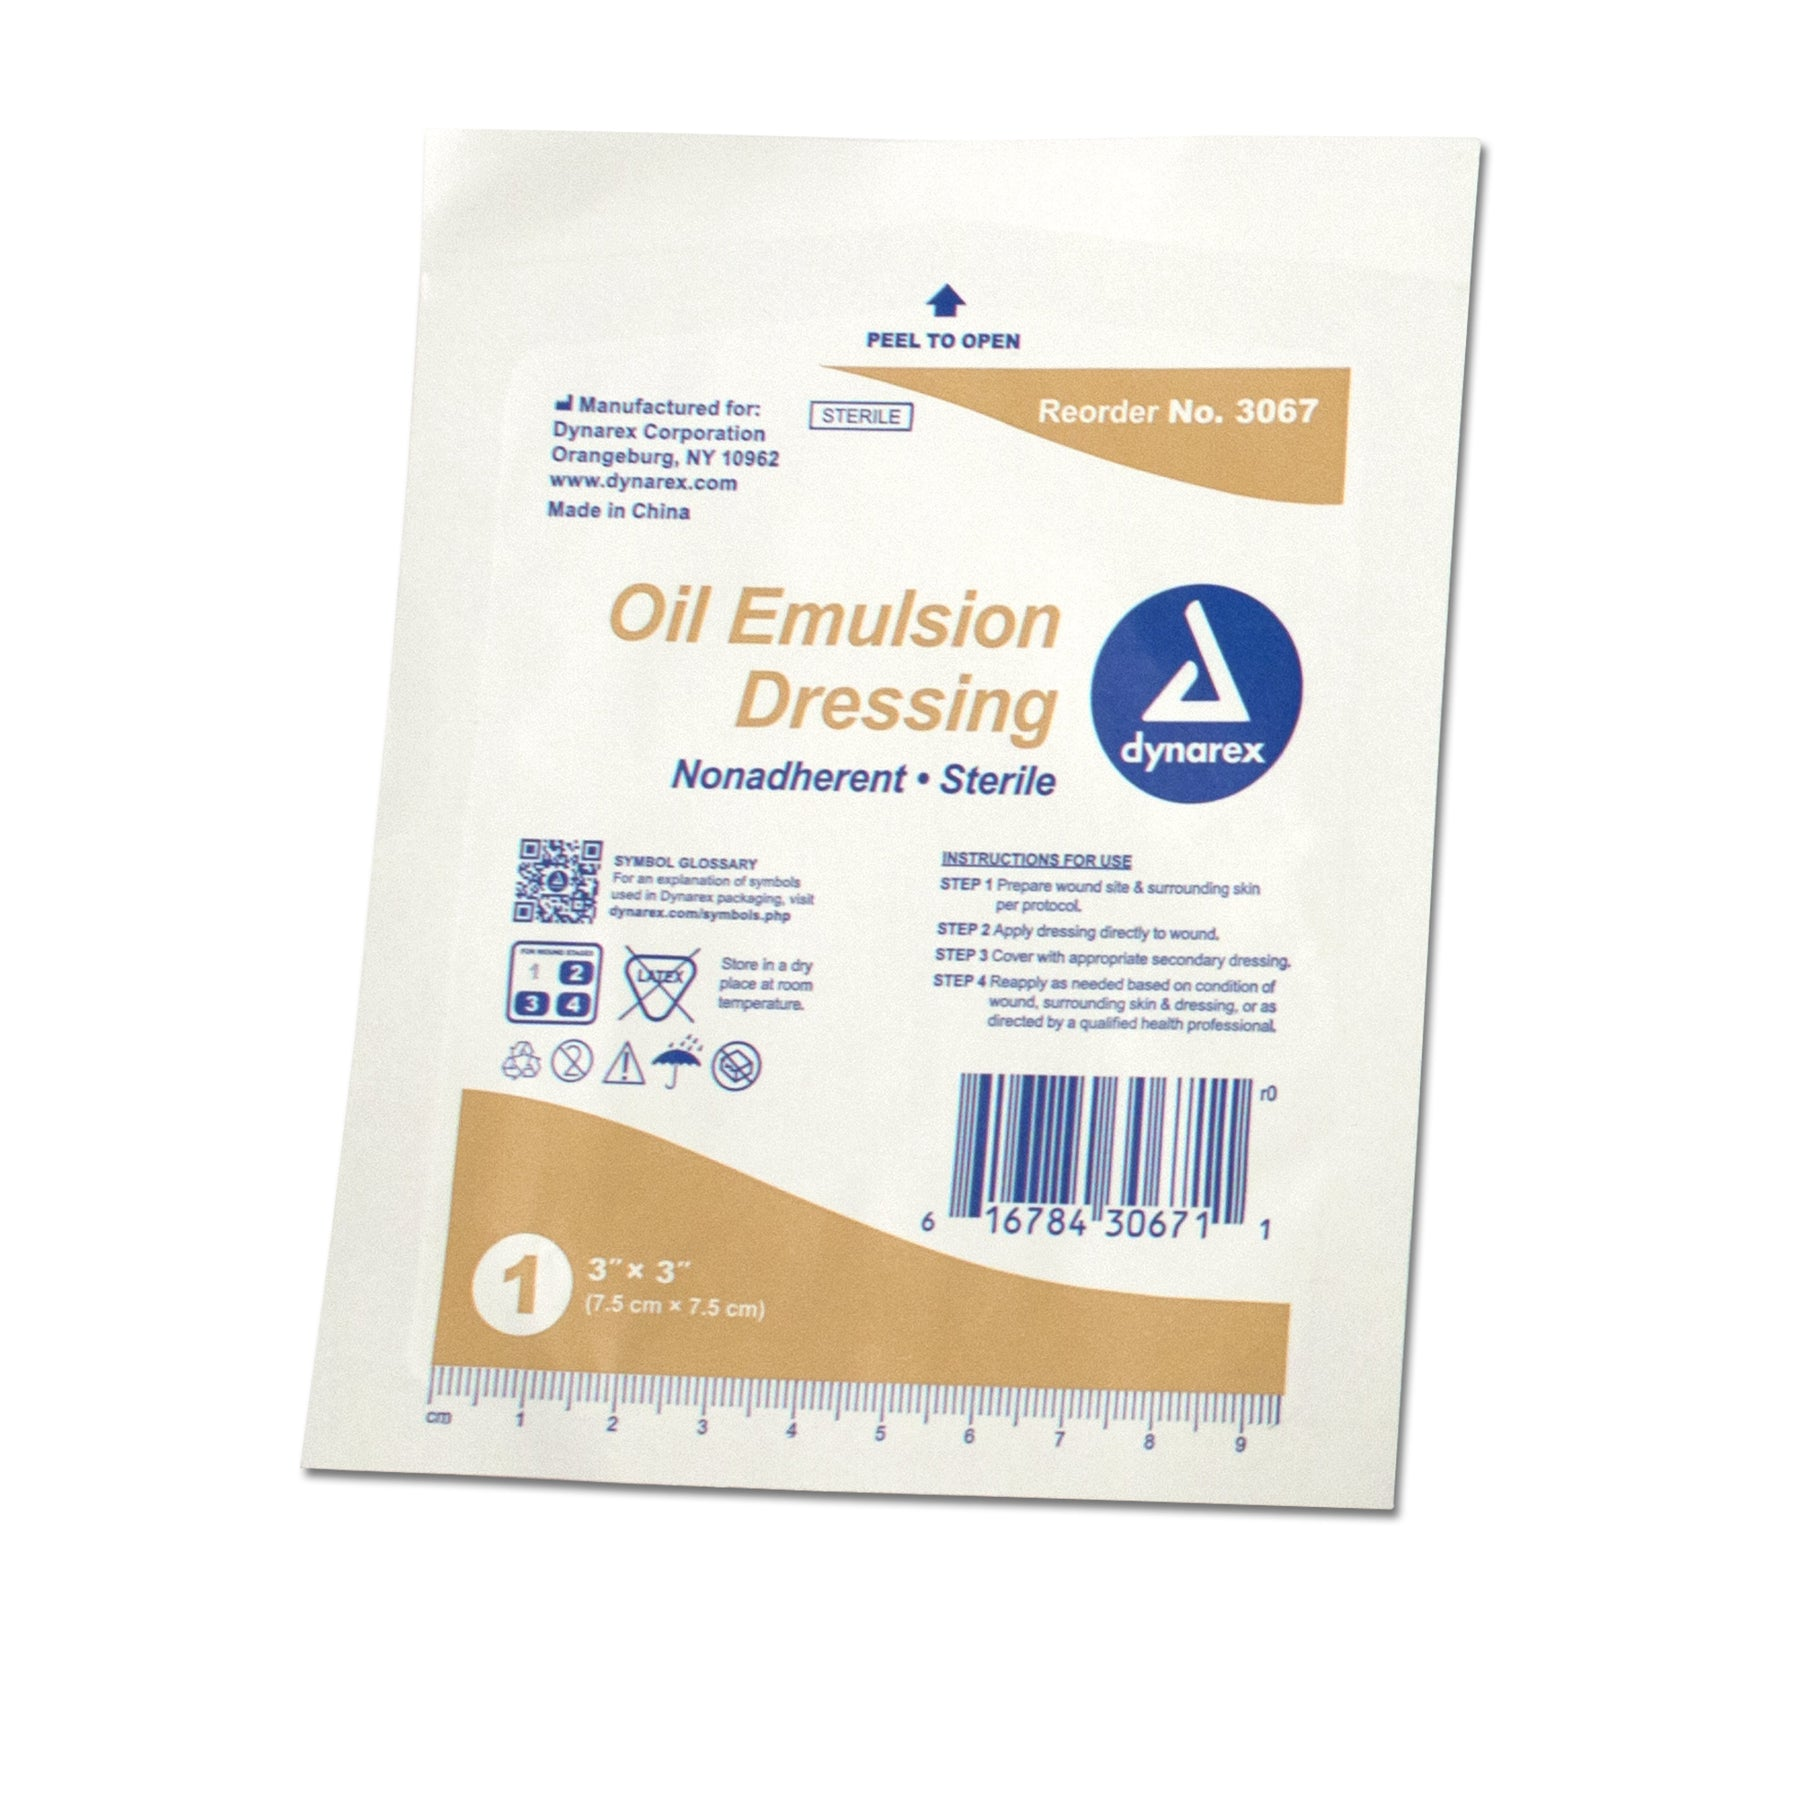 "Oil Emulsion Dressing 3"" x 3"" (50/bx) by Dynarex - MedStockUSA.com"